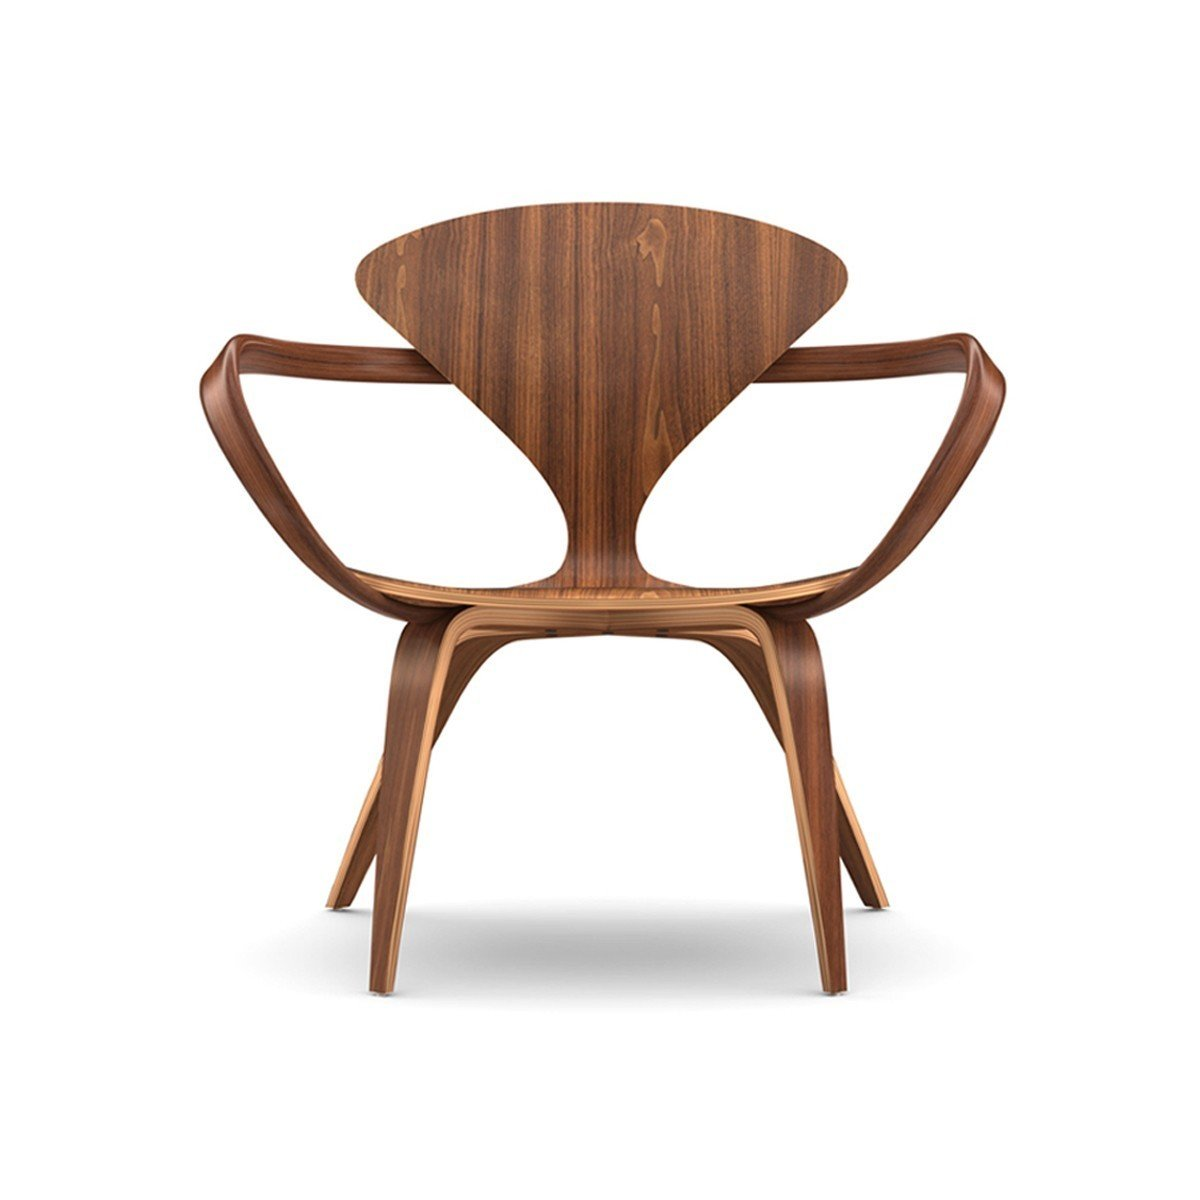 Connecticut. Benjamin Cherner reproduces the iconic designs of his father, Norman, for the Cherner Chair Company, based in Ridgefield, Connecticut. The furniture, like this lounge arm chair, sports organic shapes made in molded plywood with a natural walnut finish.